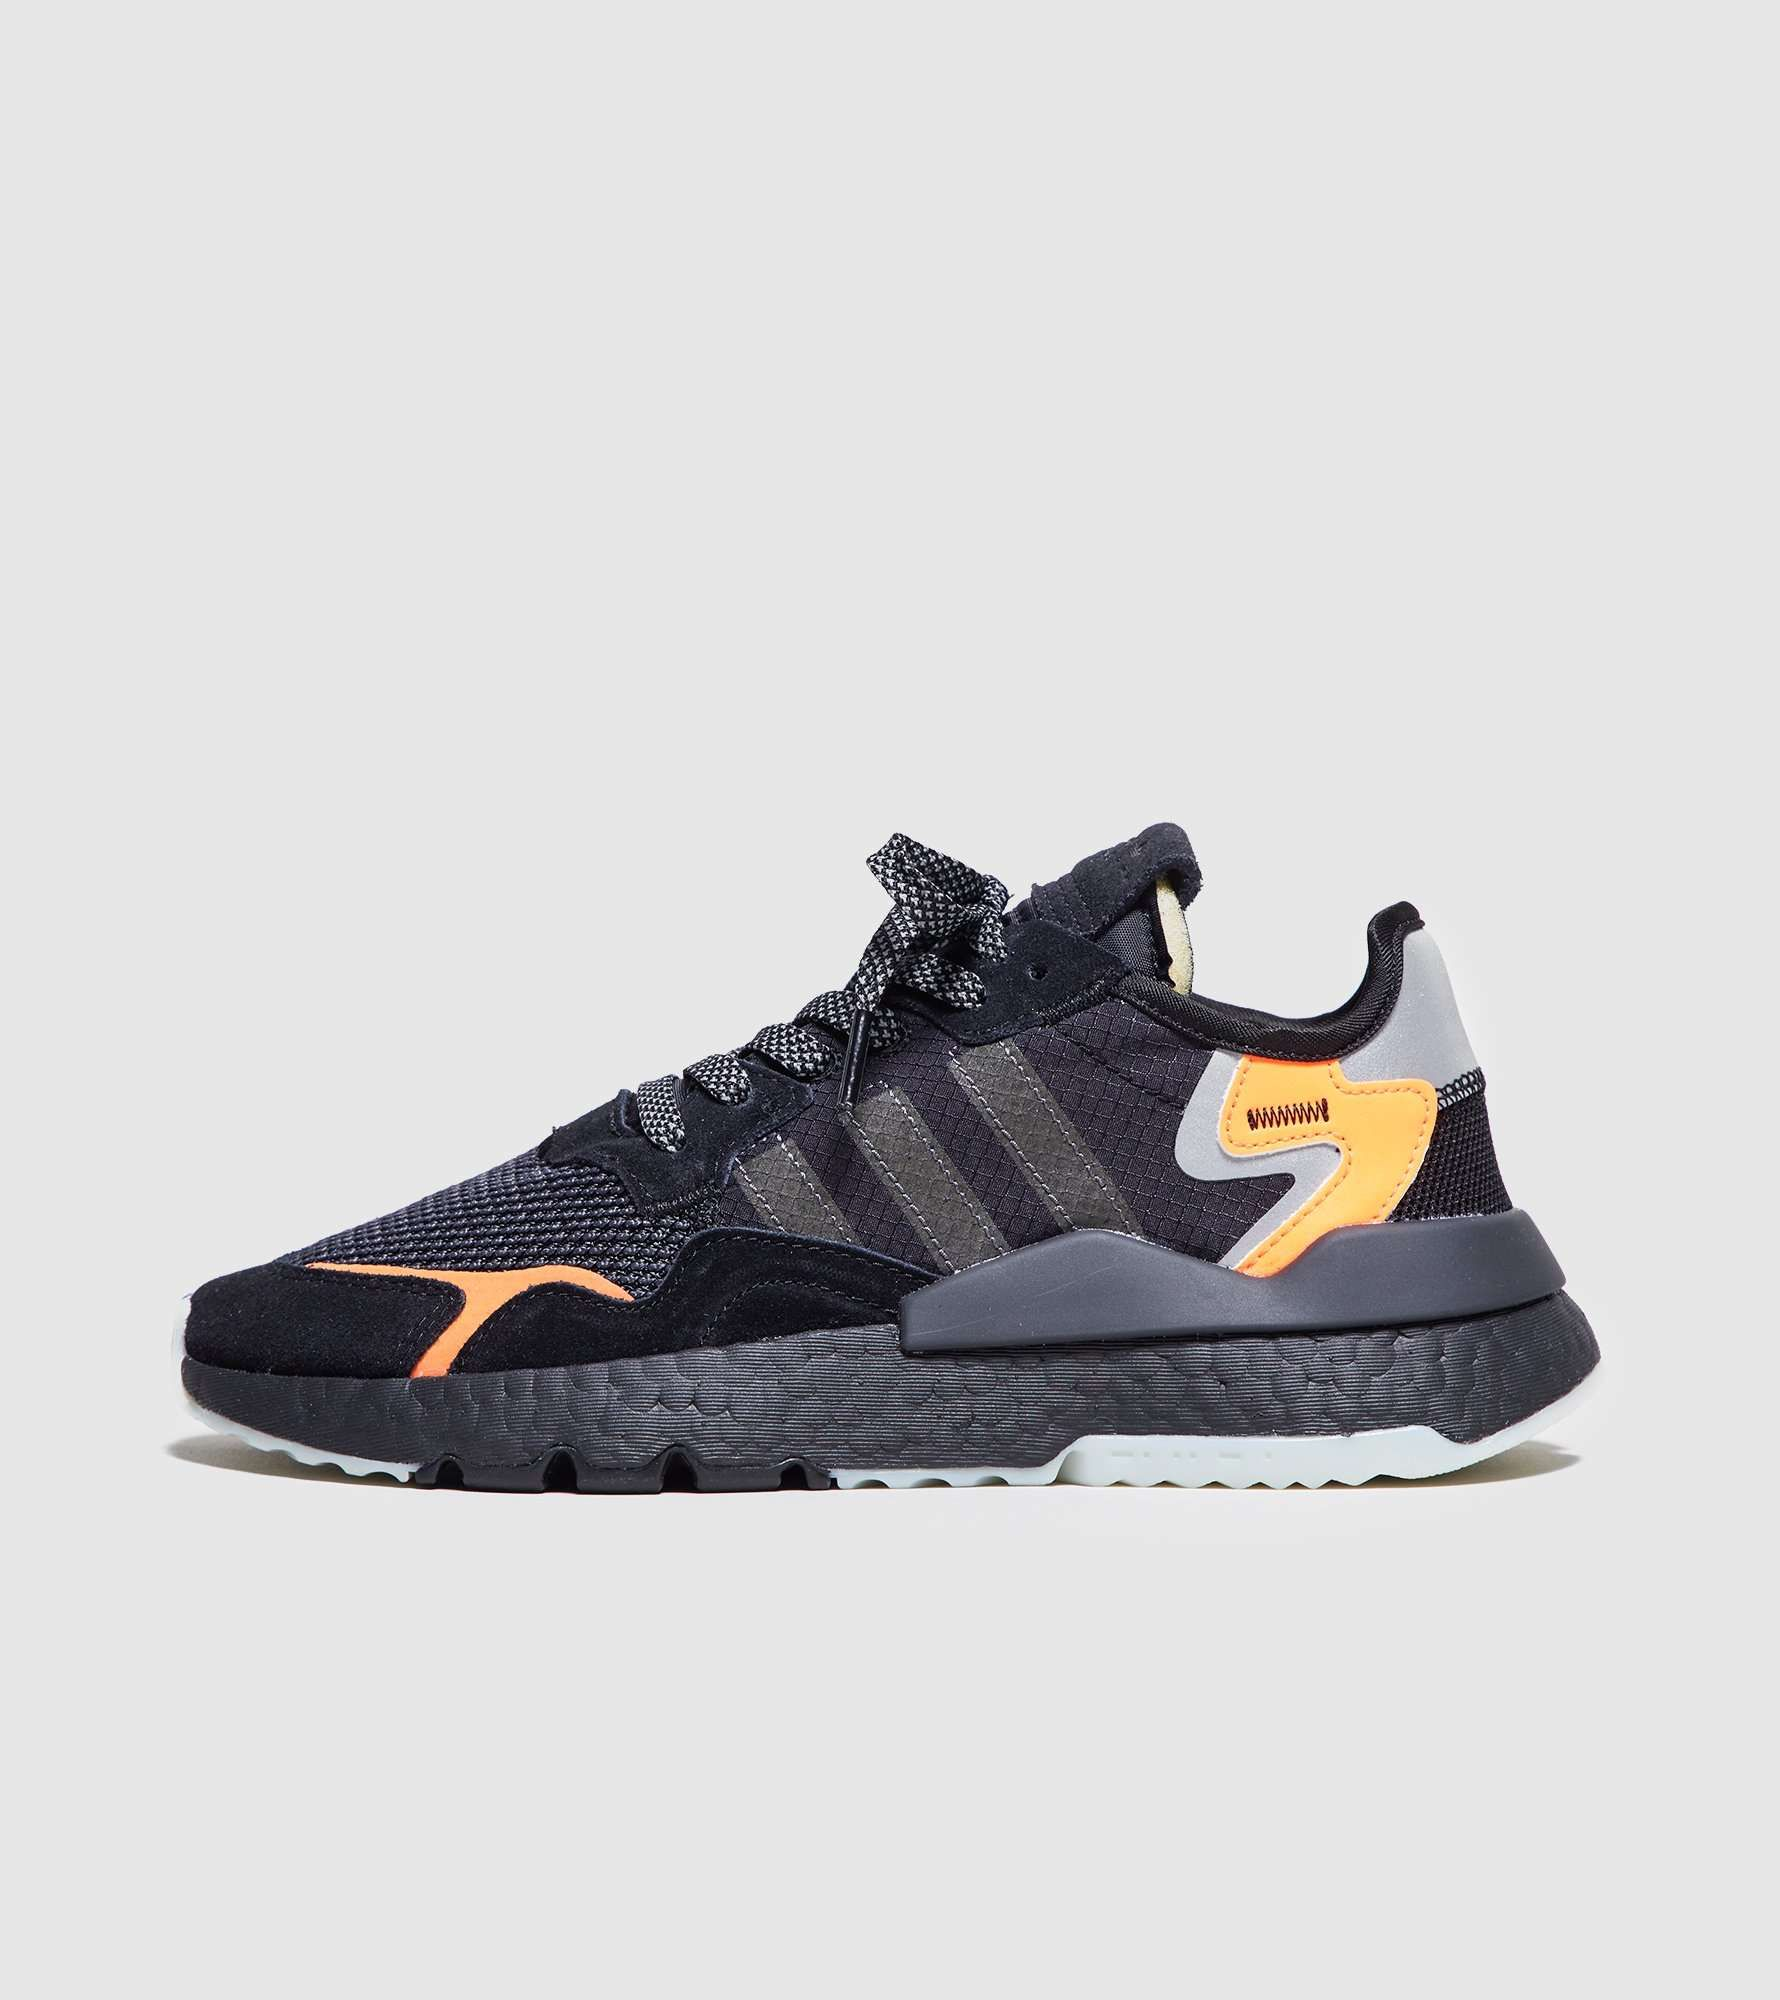 adidas Originals Nite Jogger Women s - find out more on our site. Find the  freshest in trainers and clothing online now. 6dcdfea82